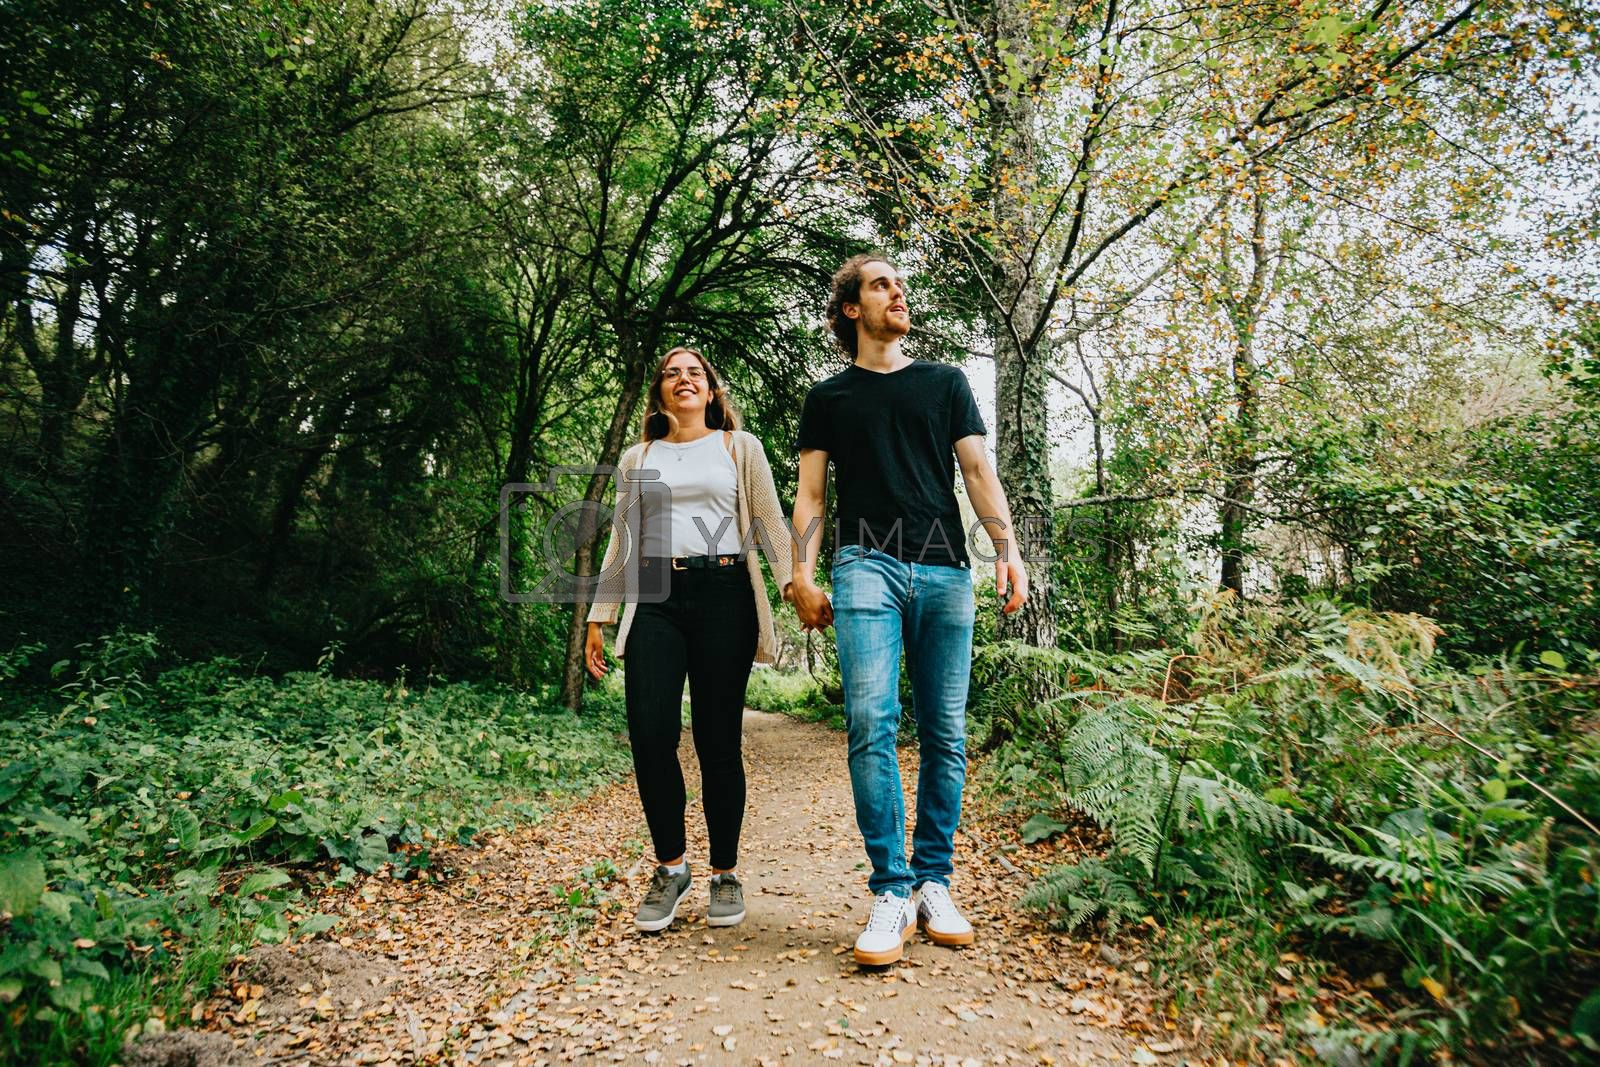 A front view of a young couple taking a walk and exploring the forest